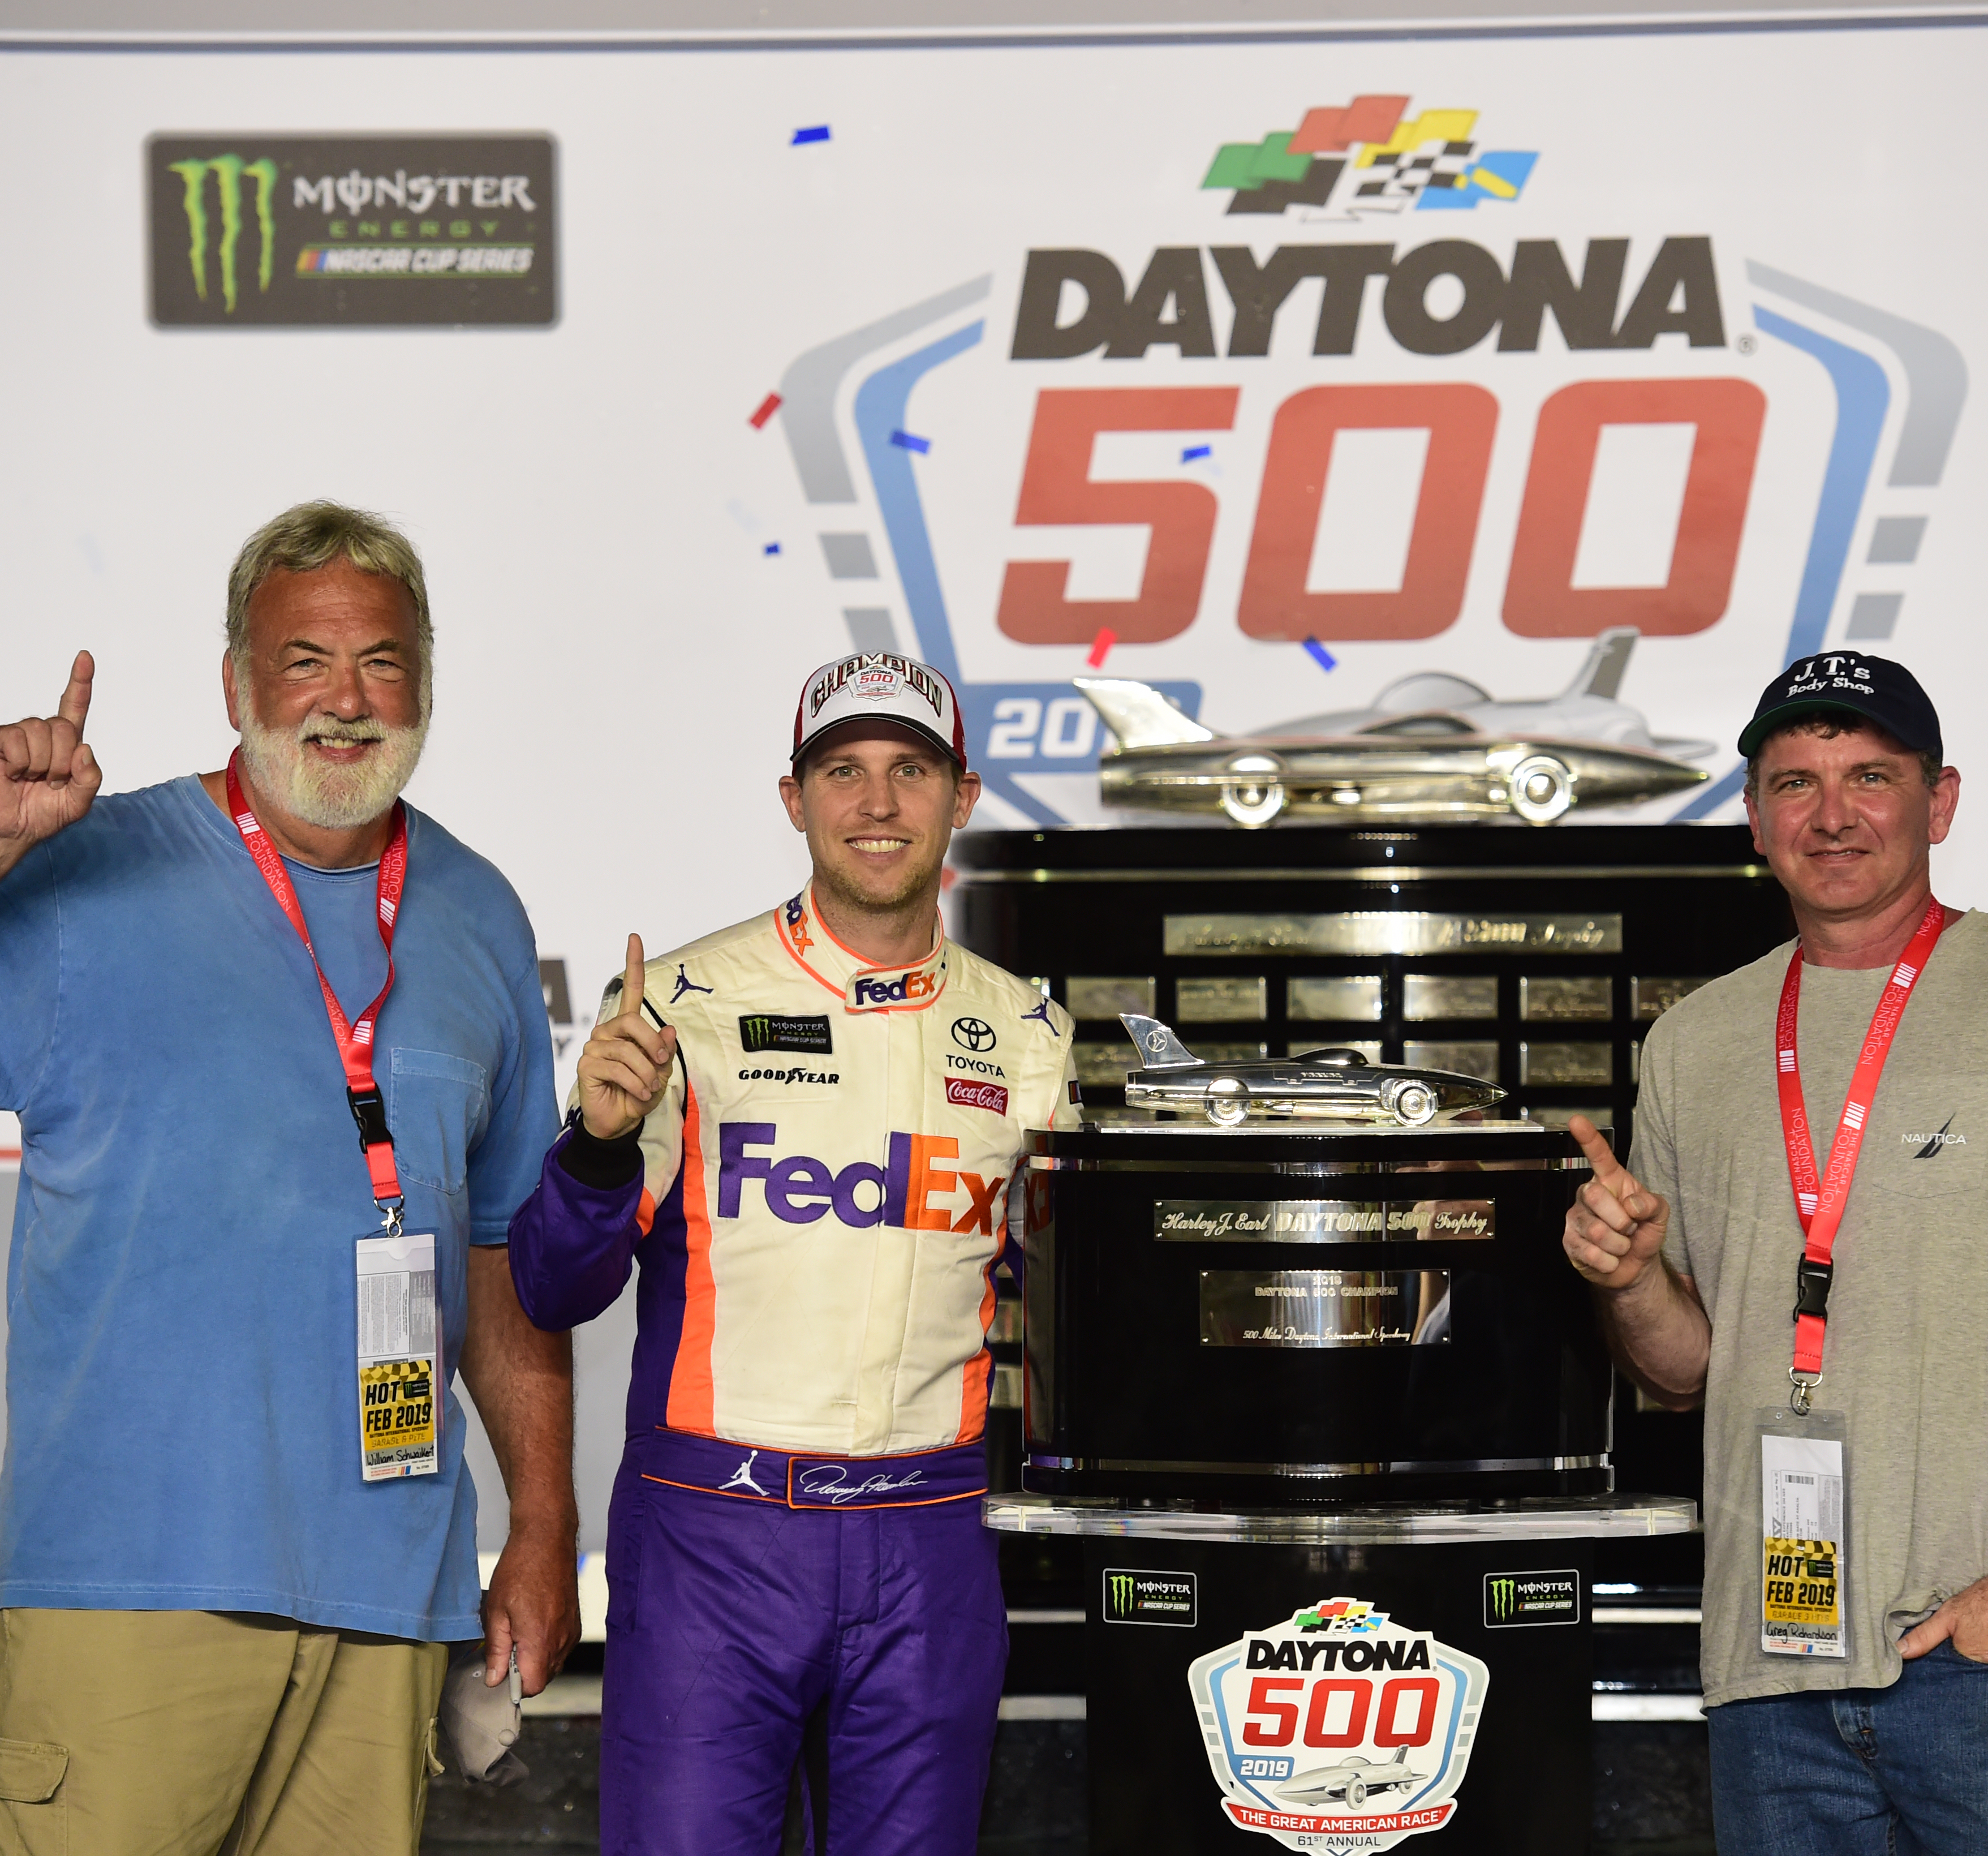 DAYTONA BEACH, FLORIDA - FEBRUARY 17: Denny Hamlin, driver of the #11 FedEx Toyota poses for a photo after winning in Victory Lane at Daytona International Speedway on February 17, 2019 in Daytona Beach, Florida. (Photo by Jared C. Tilton/Getty Images) | Getty Images